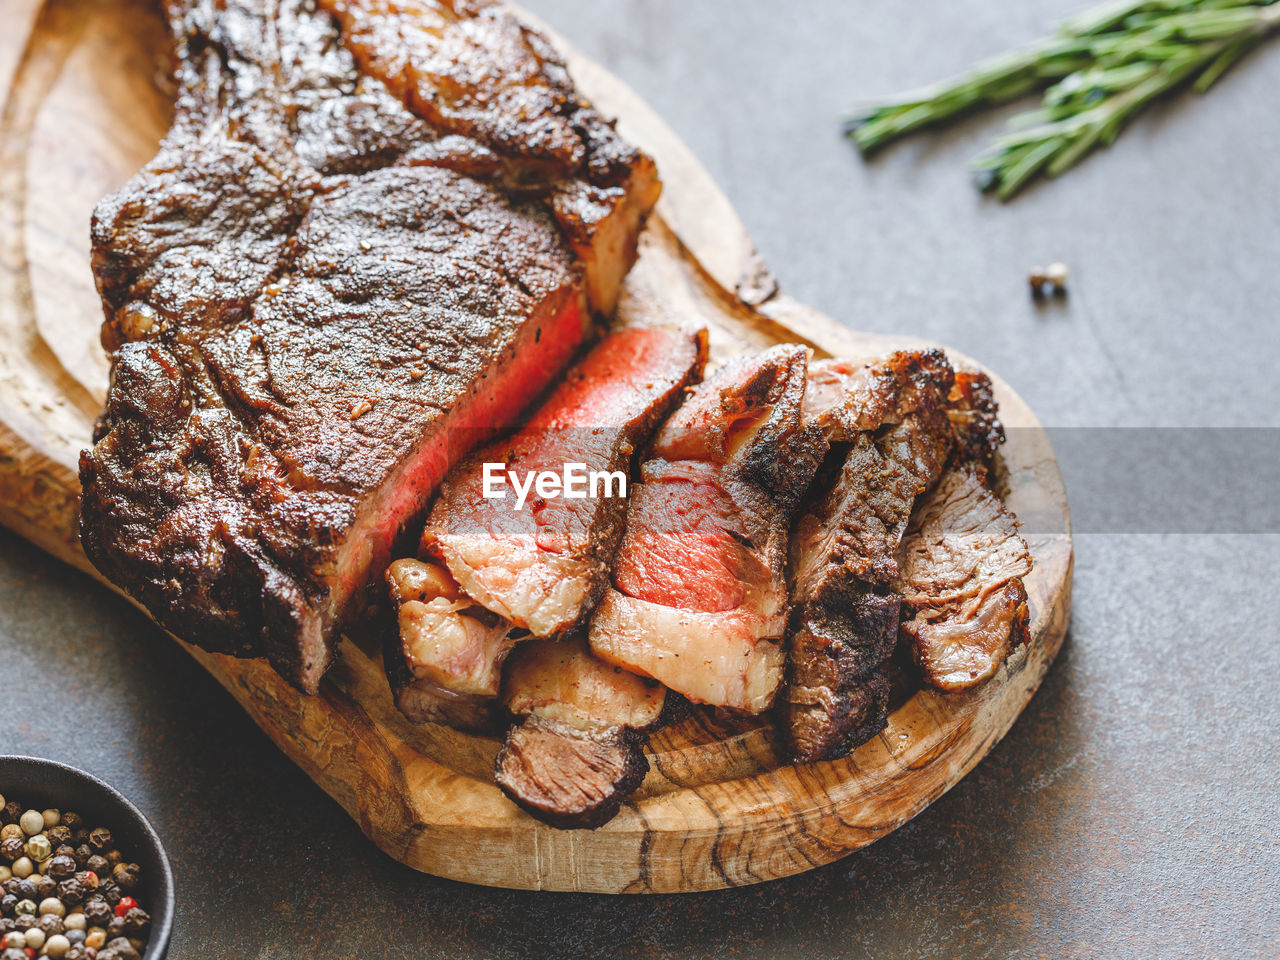 food, food and drink, meat, still life, freshness, close-up, high angle view, ready-to-eat, indoors, table, no people, bread, serving size, vegetable, plate, focus on foreground, red meat, unhealthy eating, slice, meal, beef, temptation, dinner